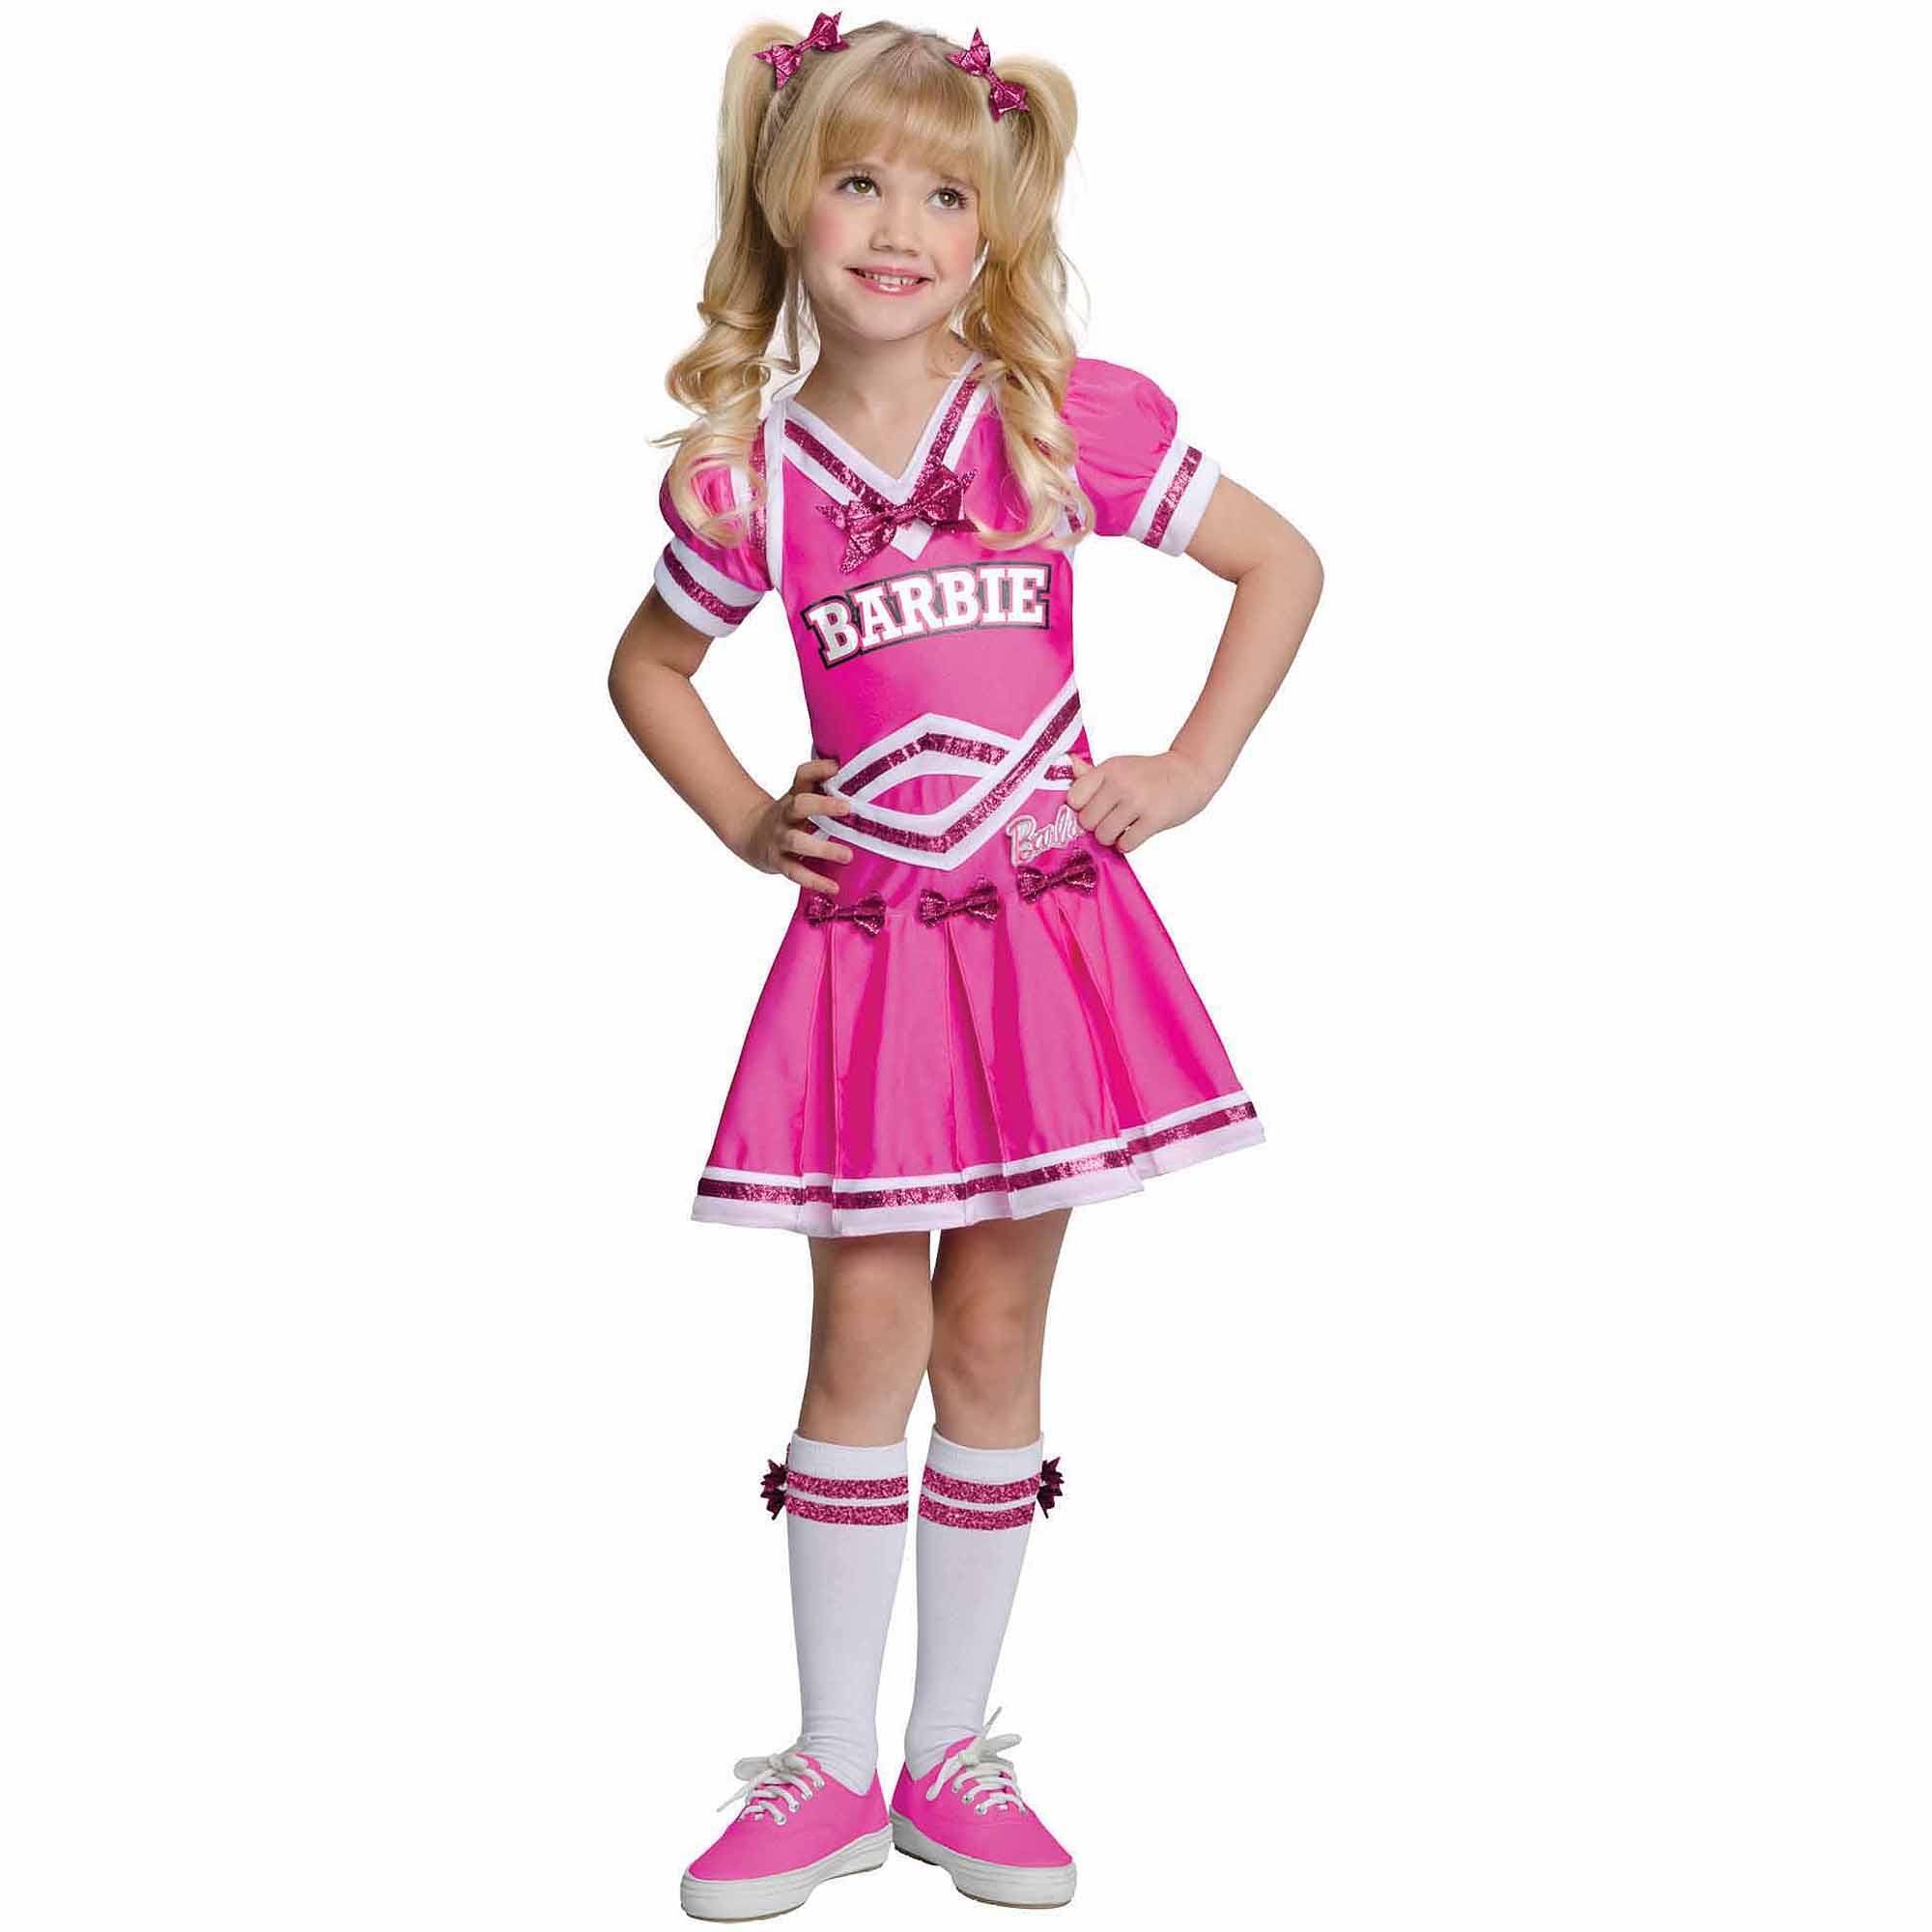 Barbie Cheerleader Child Halloween Costume  sc 1 st  Walmart & Cheerleader Costumes